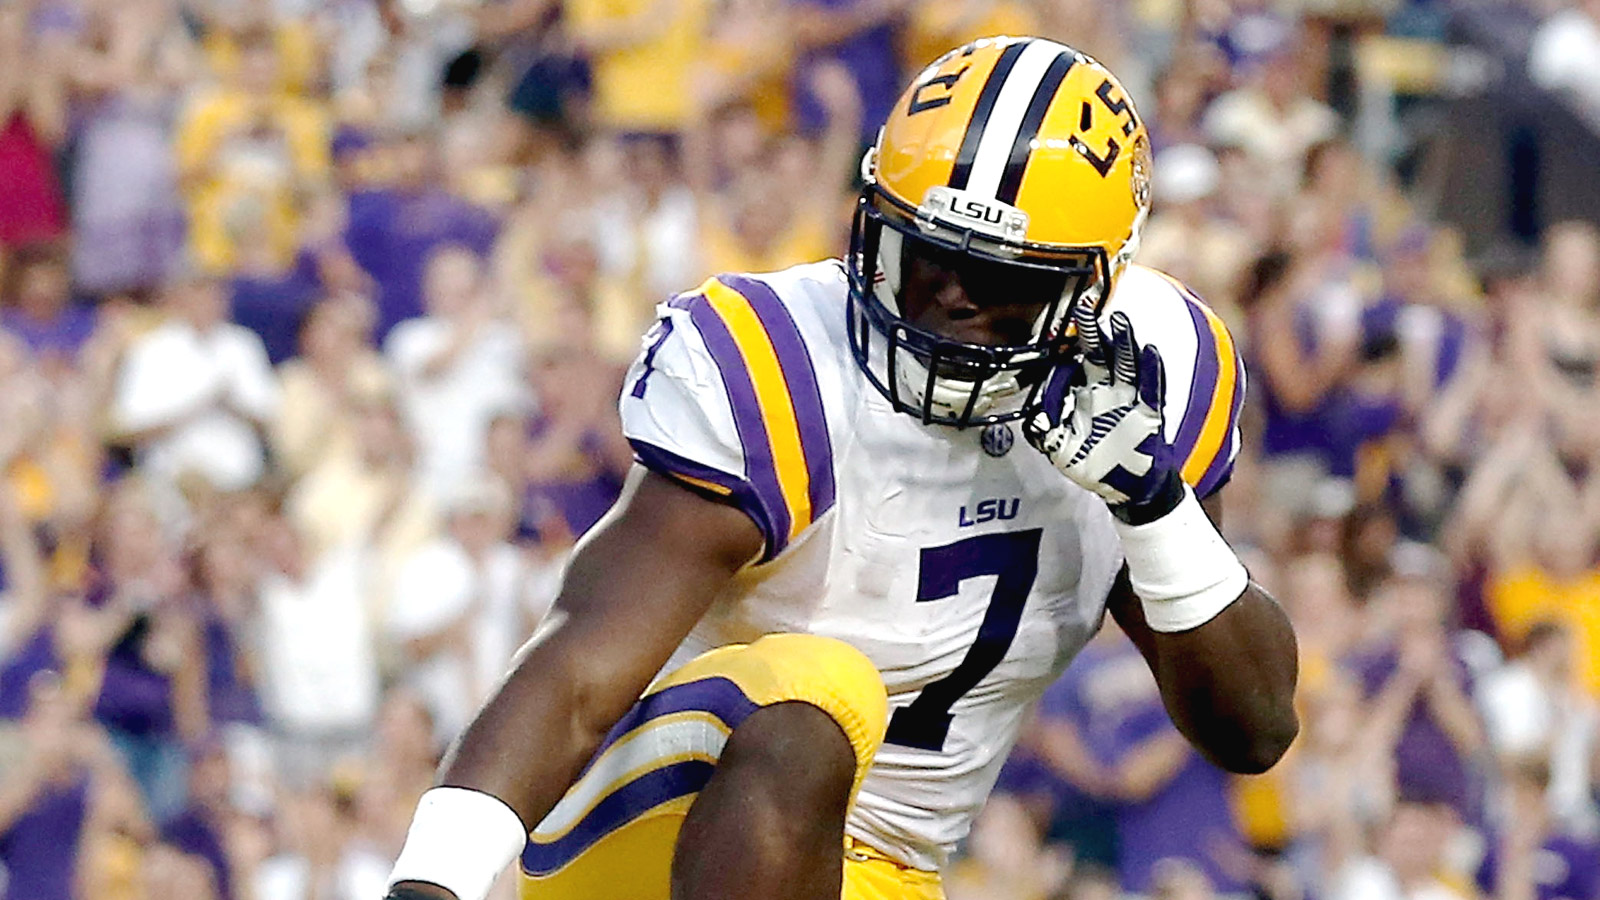 BATON ROUGE, LA - SEPTEMBER 06:  Leonard Fournette #7 of the LSU Tigers reacts to a touchdown during the first quarter against the Sam Houston State Bearkats at Tiger Stadium on September 6, 2014 in Baton Rouge, Louisiana.  (Photo by Stacy Revere/Getty Images)